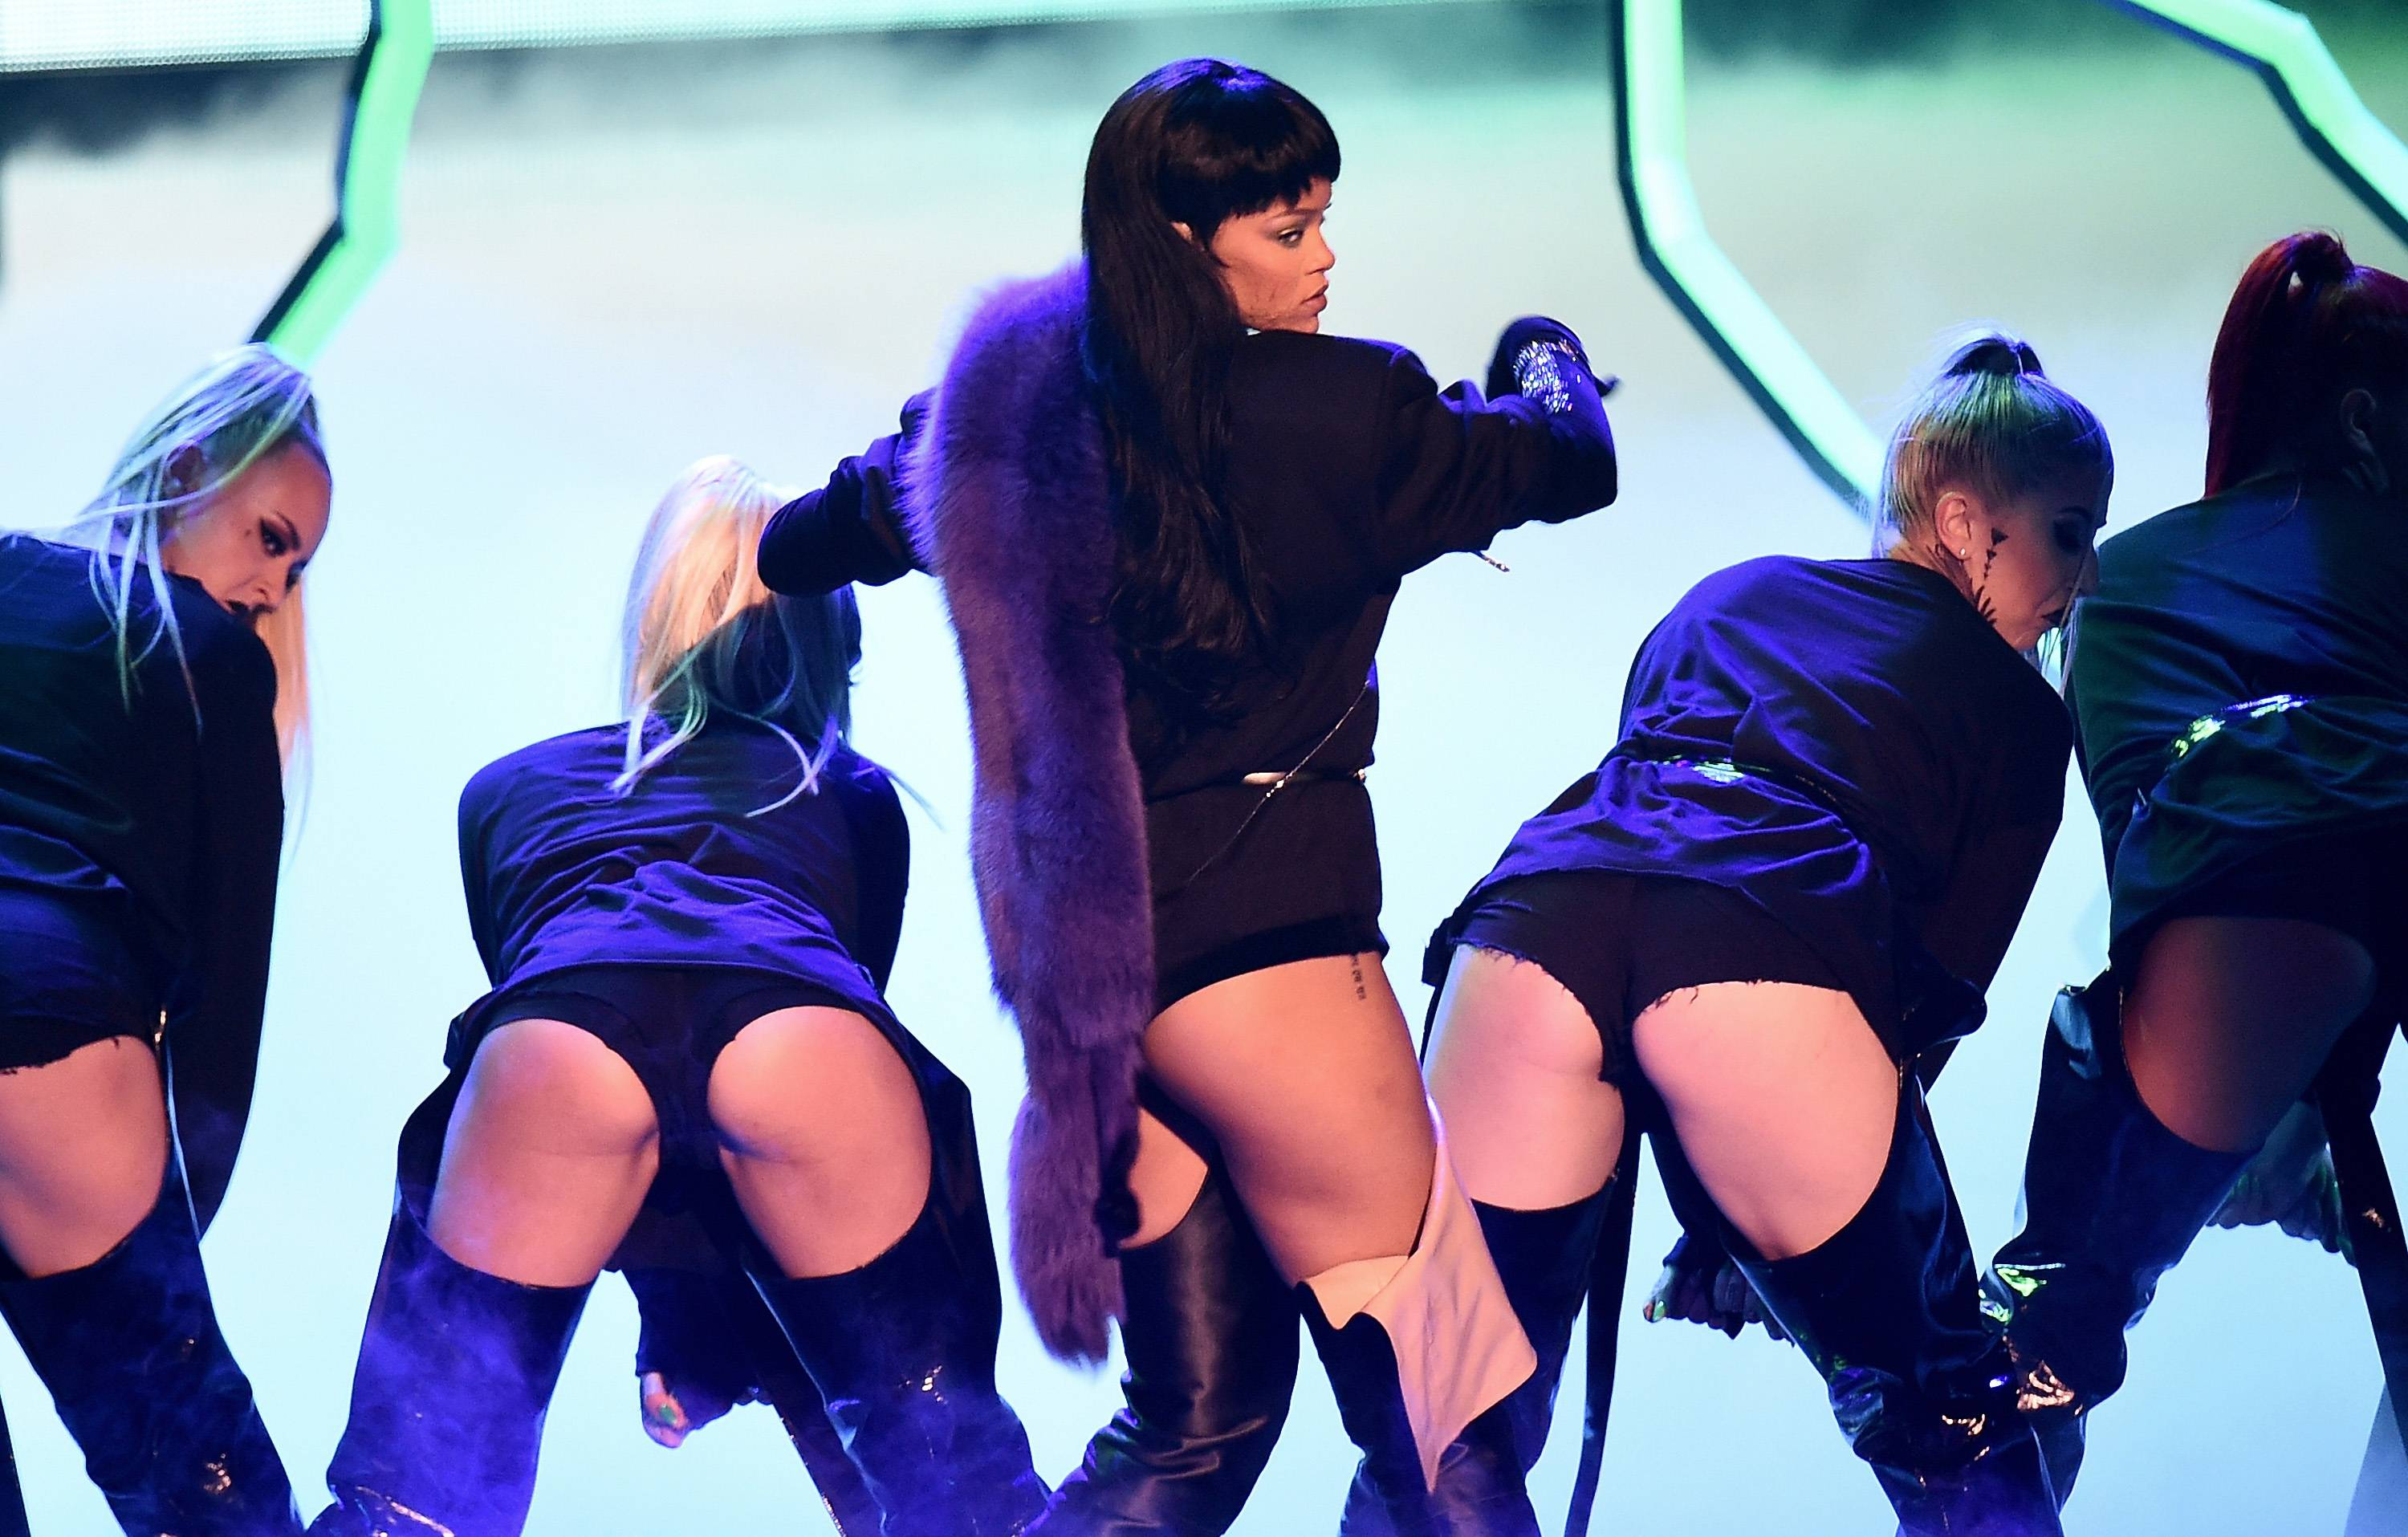 """Rihanna continues to slay in her second medley of """"""""Rude Boy / What's My Name? / Work,"""" leaving us wanting more at the 2016 VMAs."""